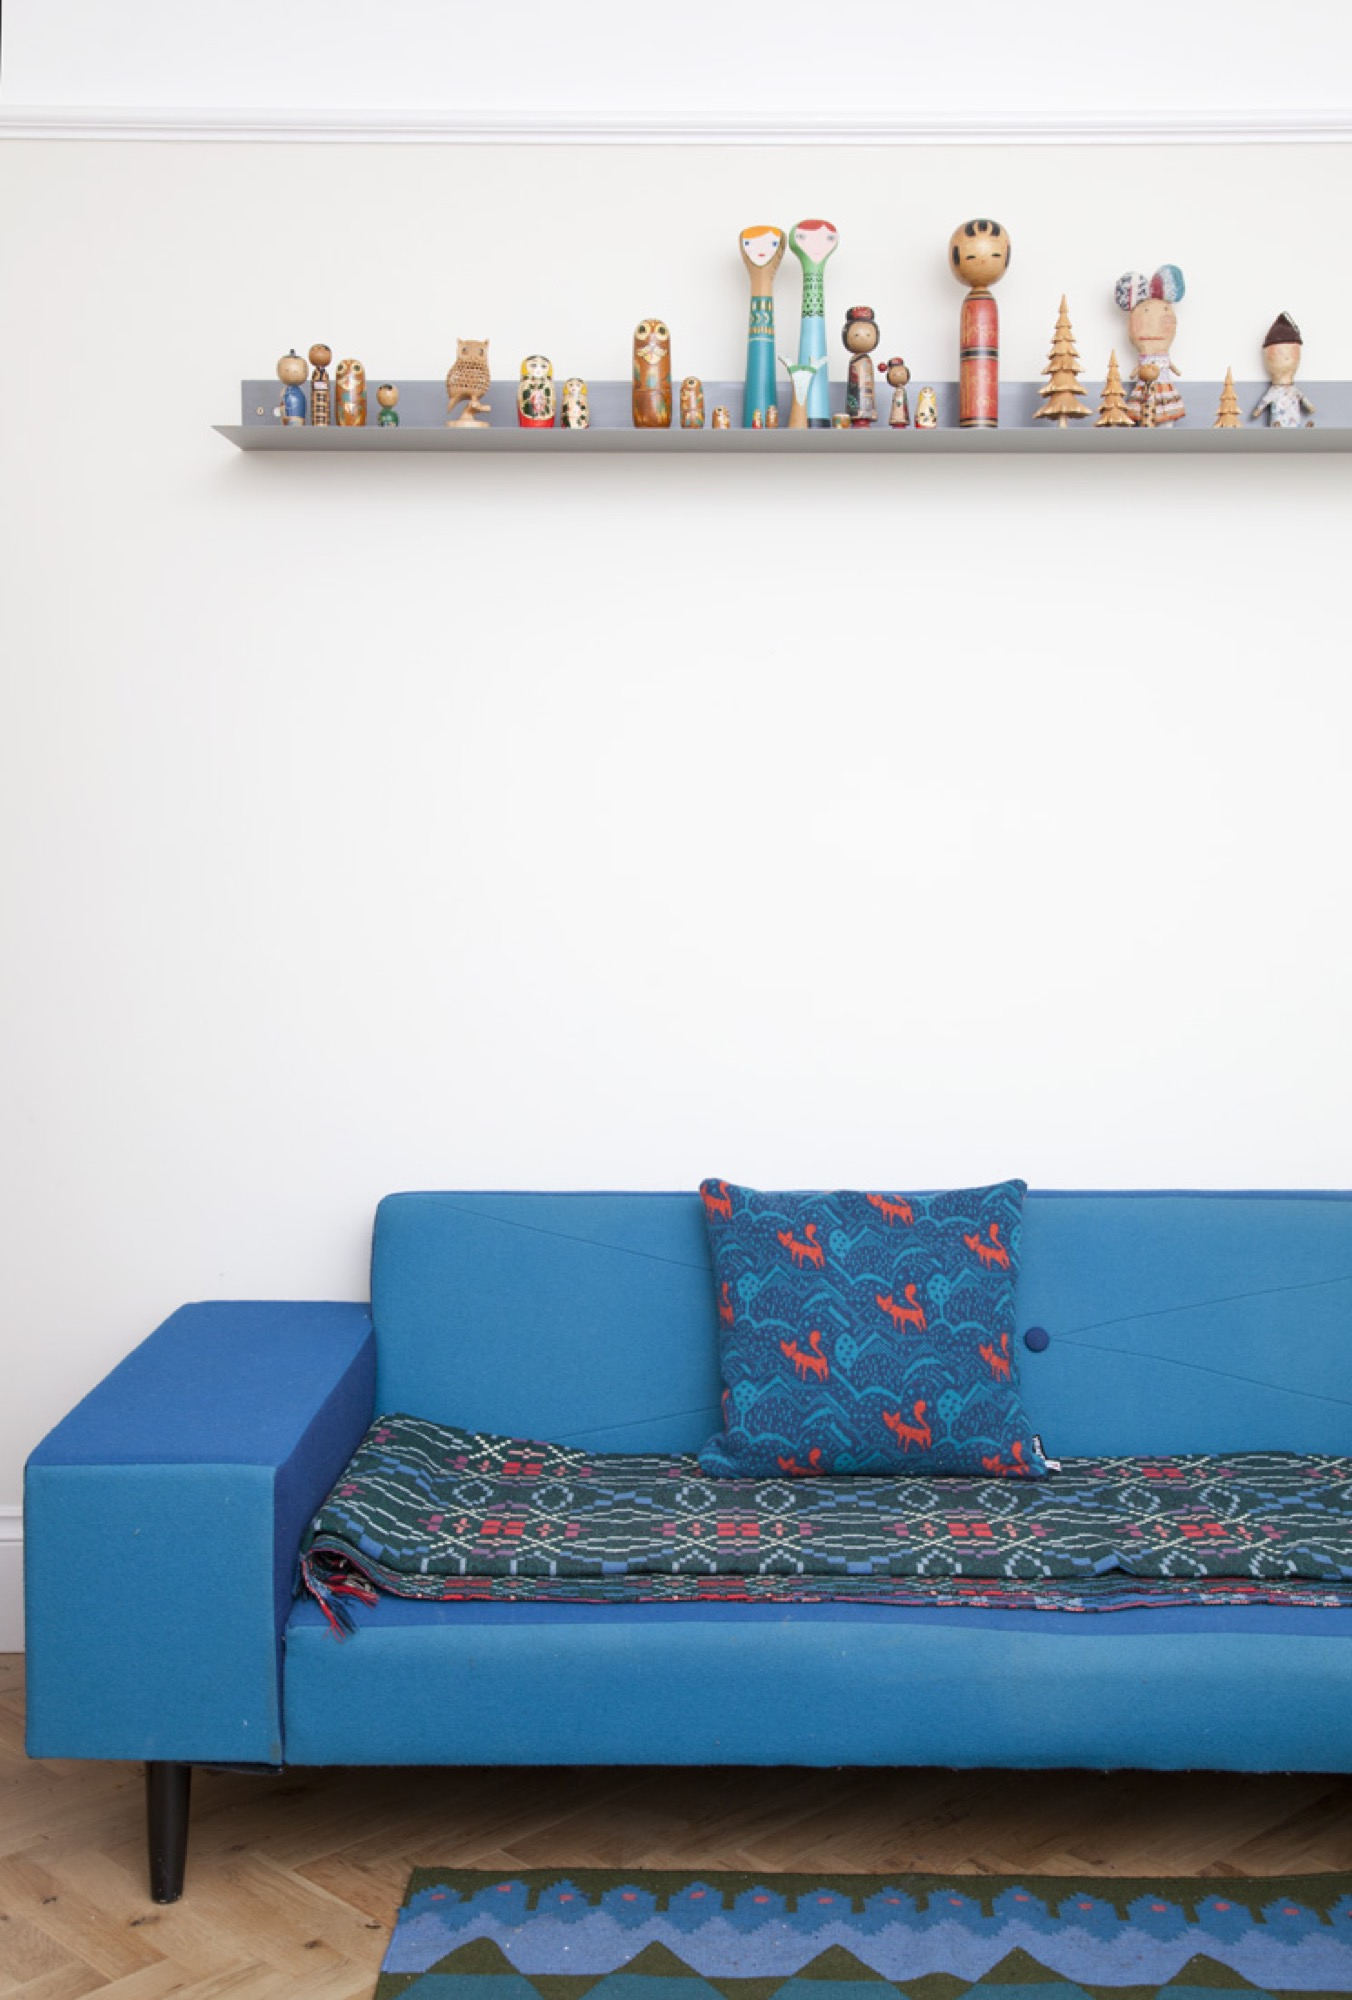 Hue sofa by Donna Wilson, produced by SCP